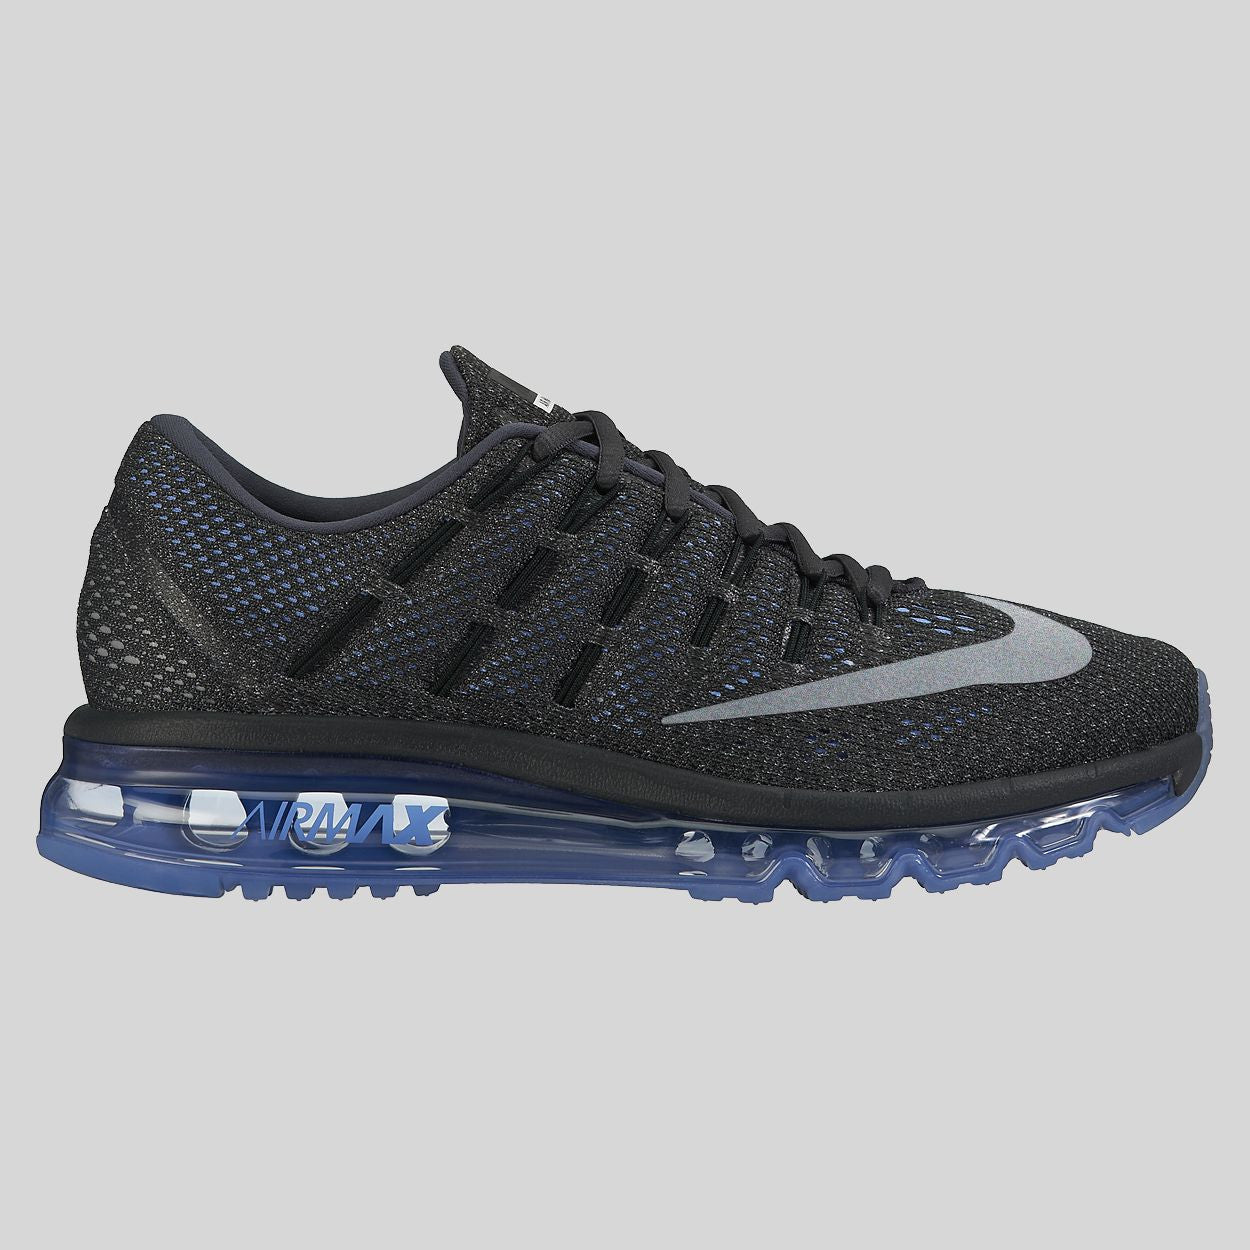 Nike Wmns Air Max 2016 Anthracite Reflect Silver Chalk Blue (806772-004)